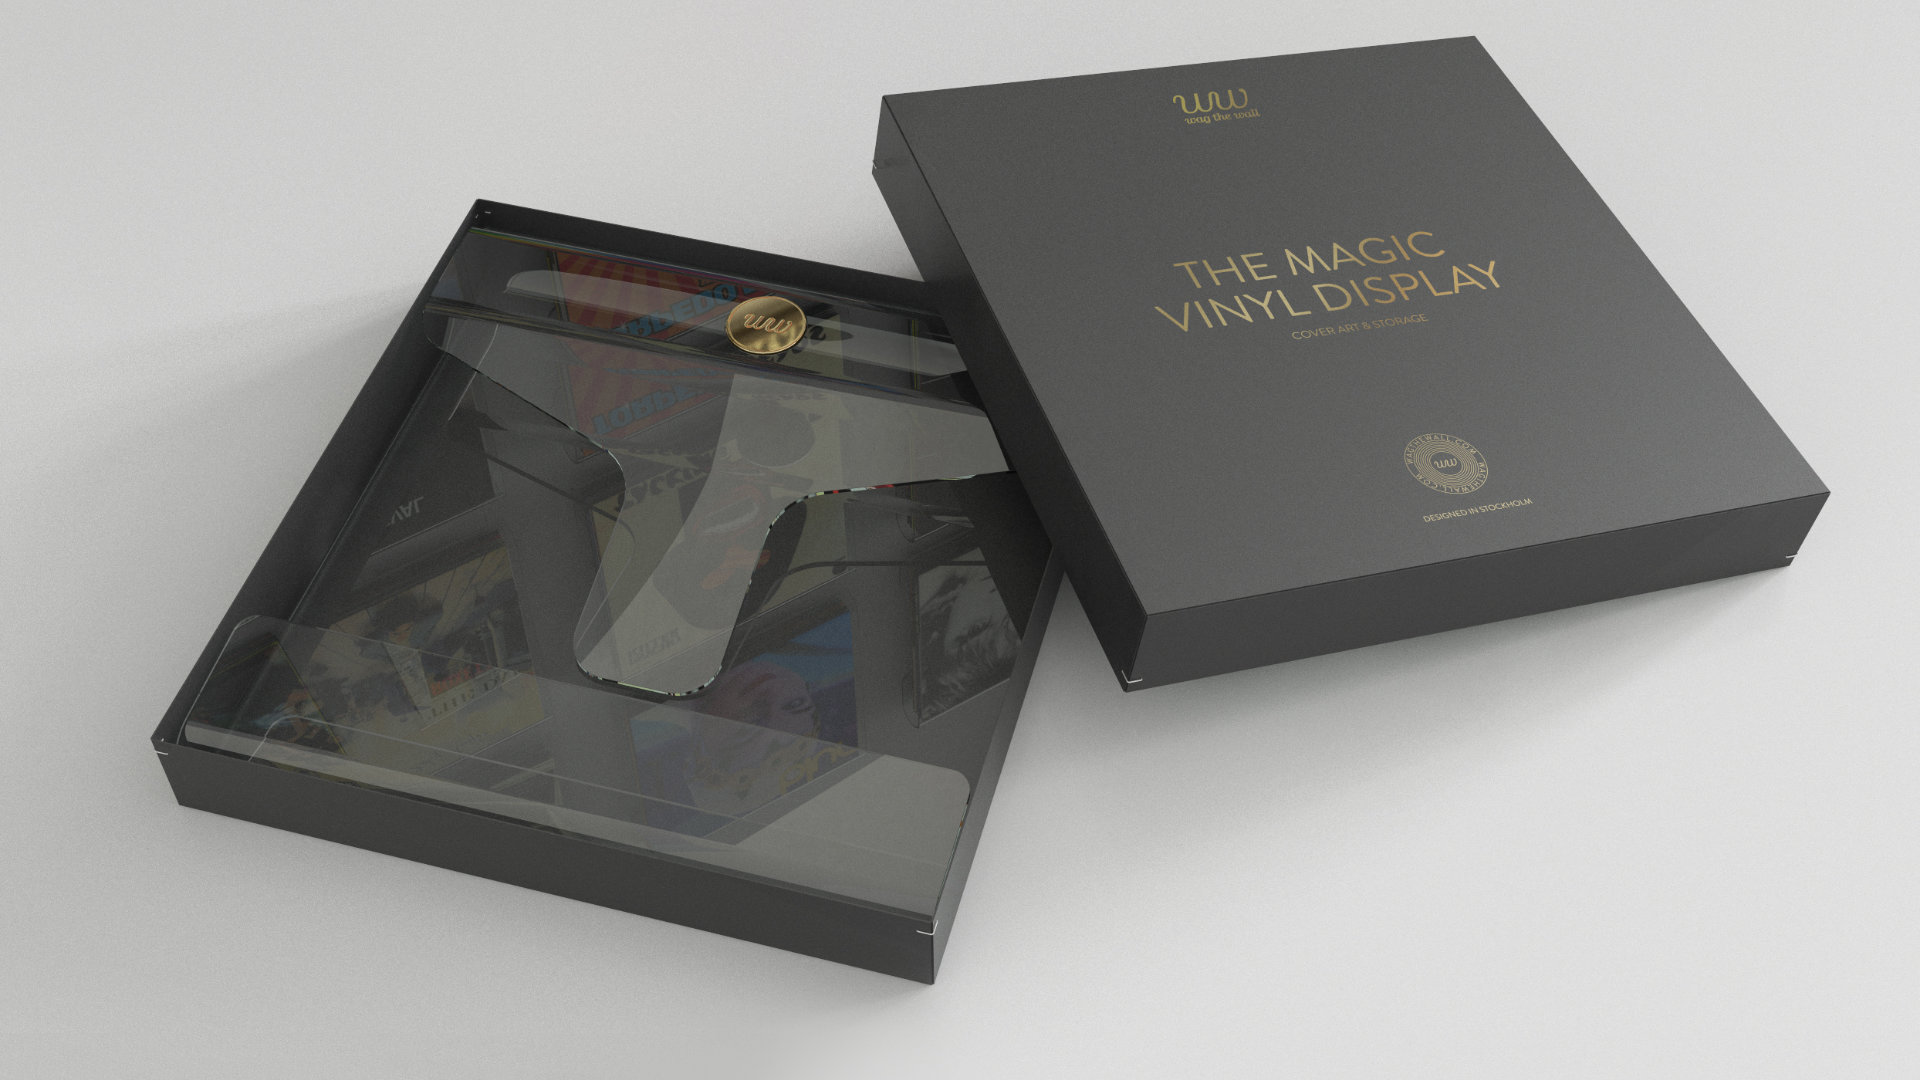 Magic Vinyl Display-Box